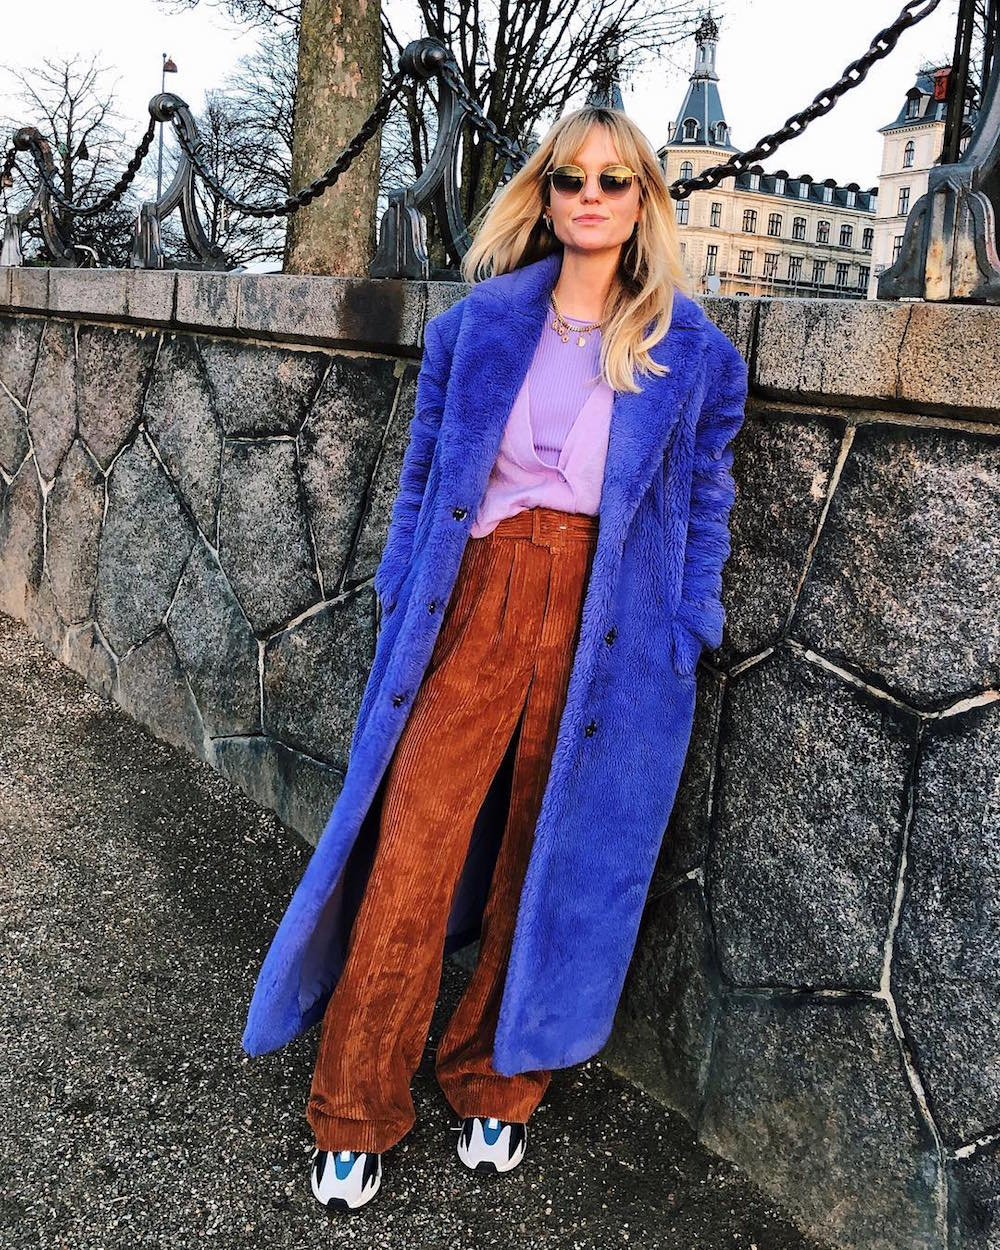 Top Fashion Bloggers On Instagram To Follow In 2019 Thefashionspot